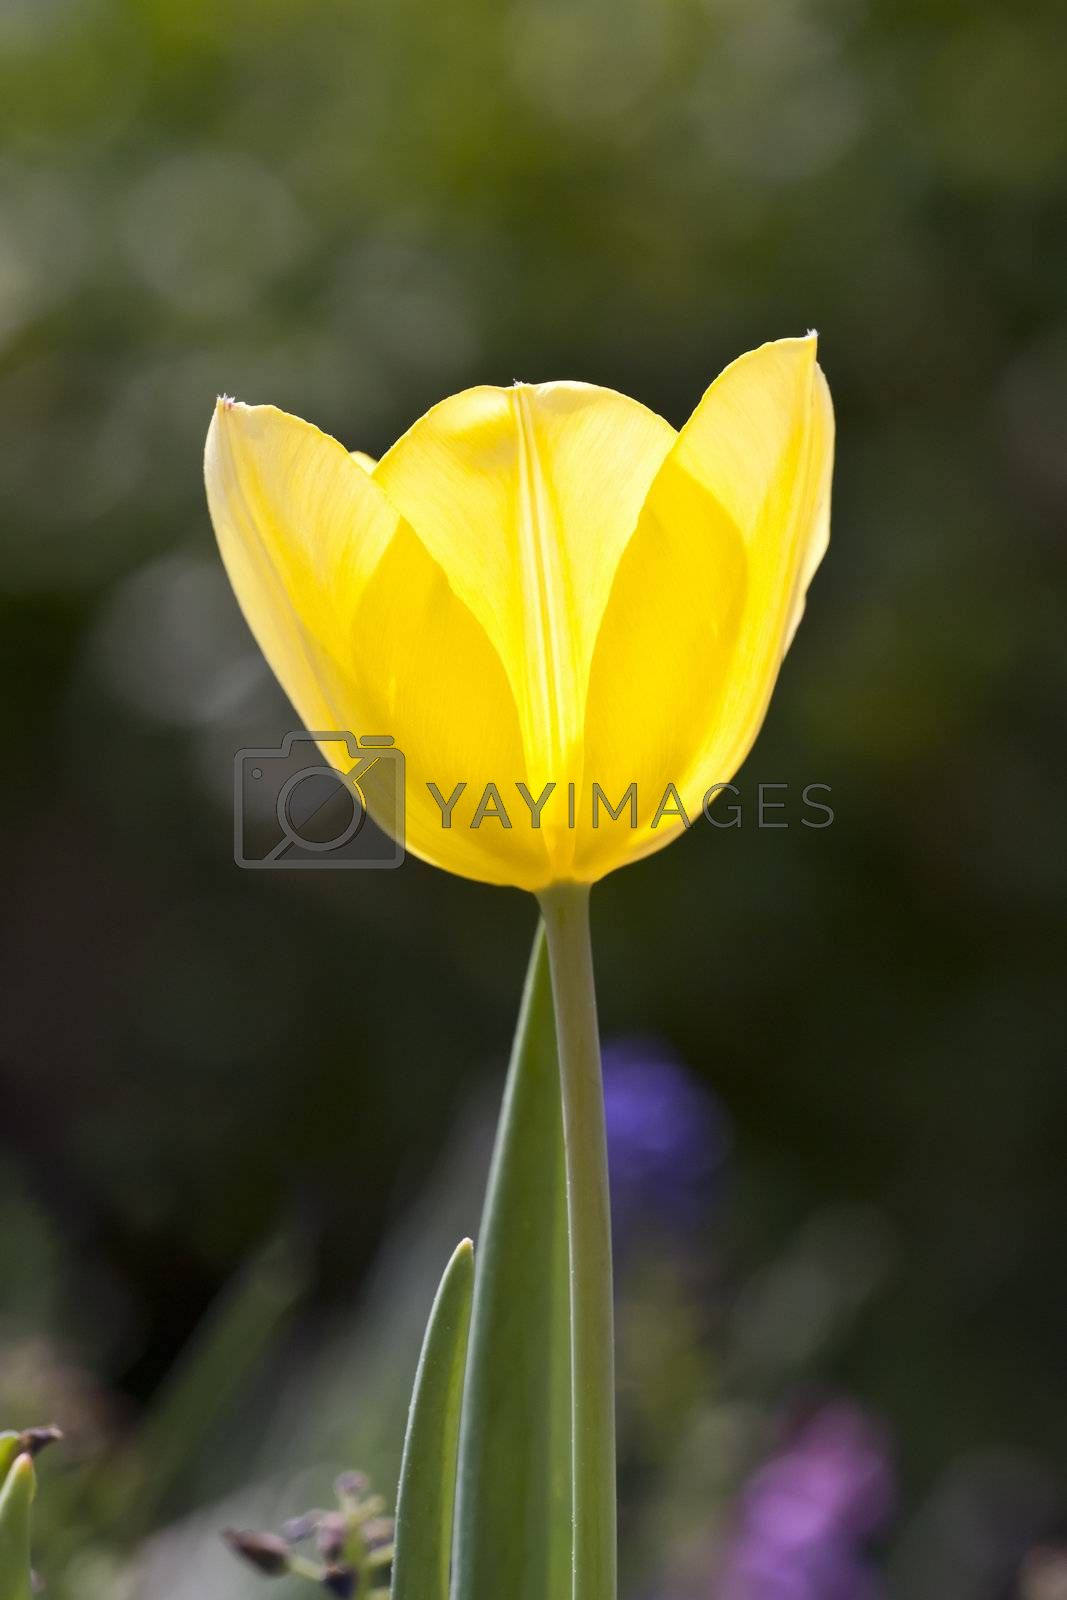 An image of a beautiful yellow tulip in the garden